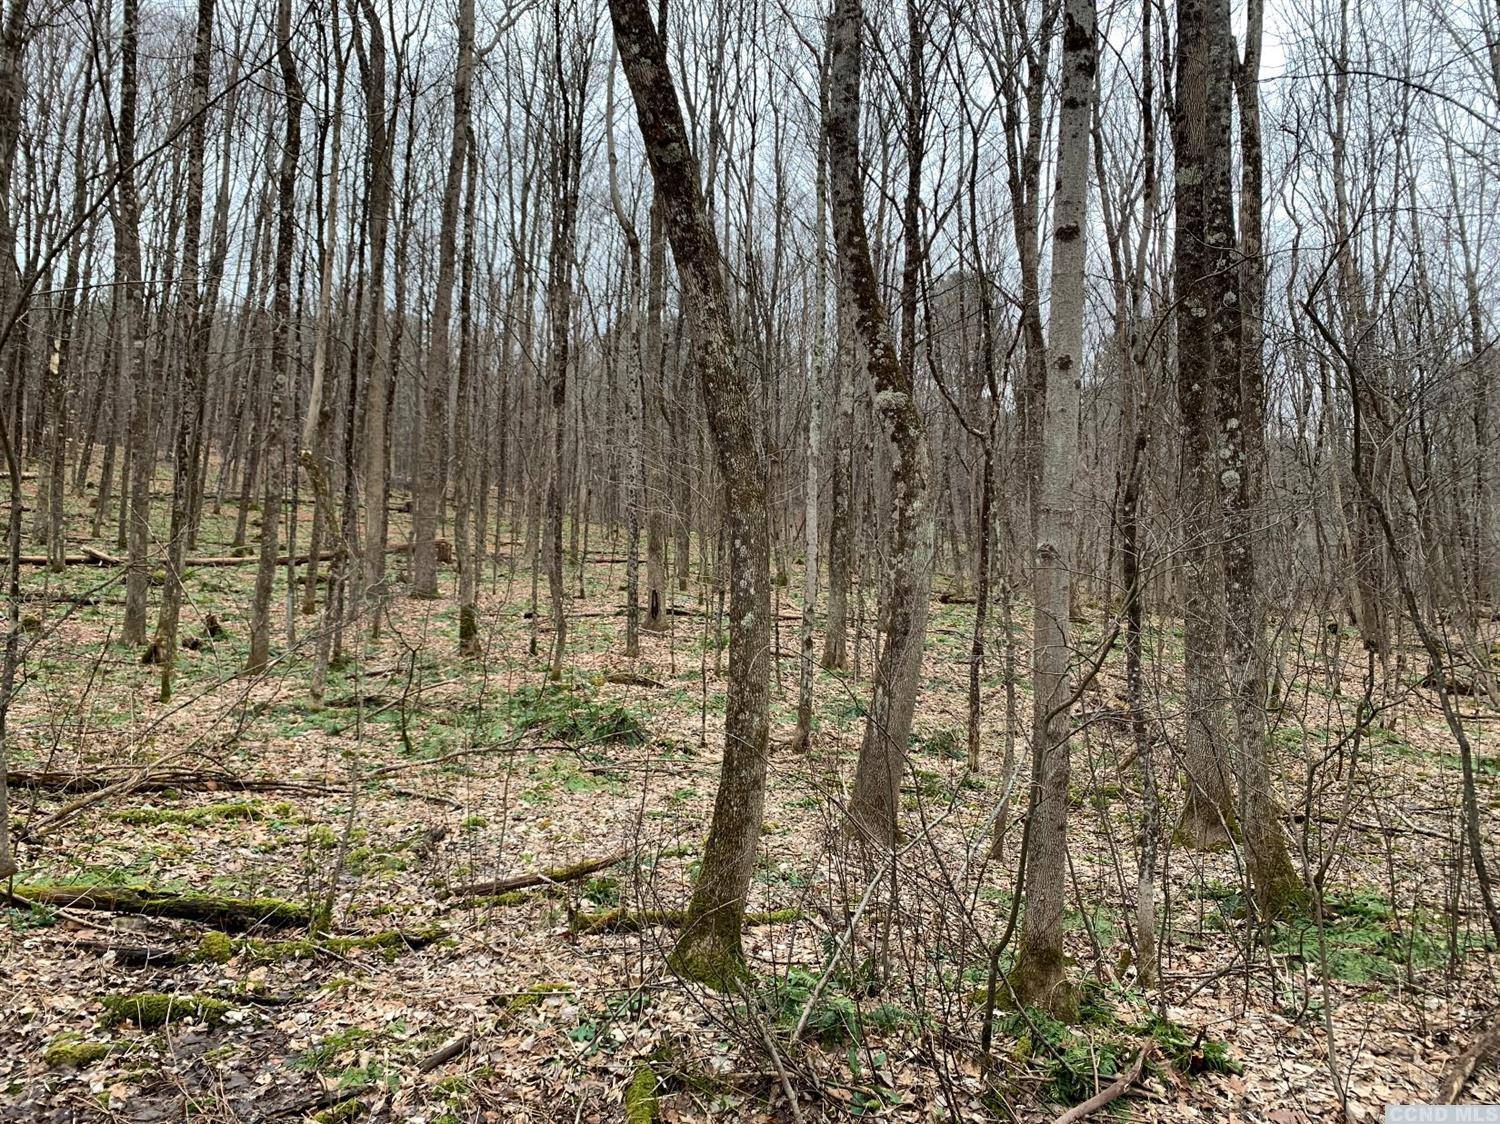 Lots of potential here.  Sparsely treed, slightly sloped to build your dream home.  Country road close to route 20 with easy commute to the Berkshires and parkway, only 30 minutes to Albany.